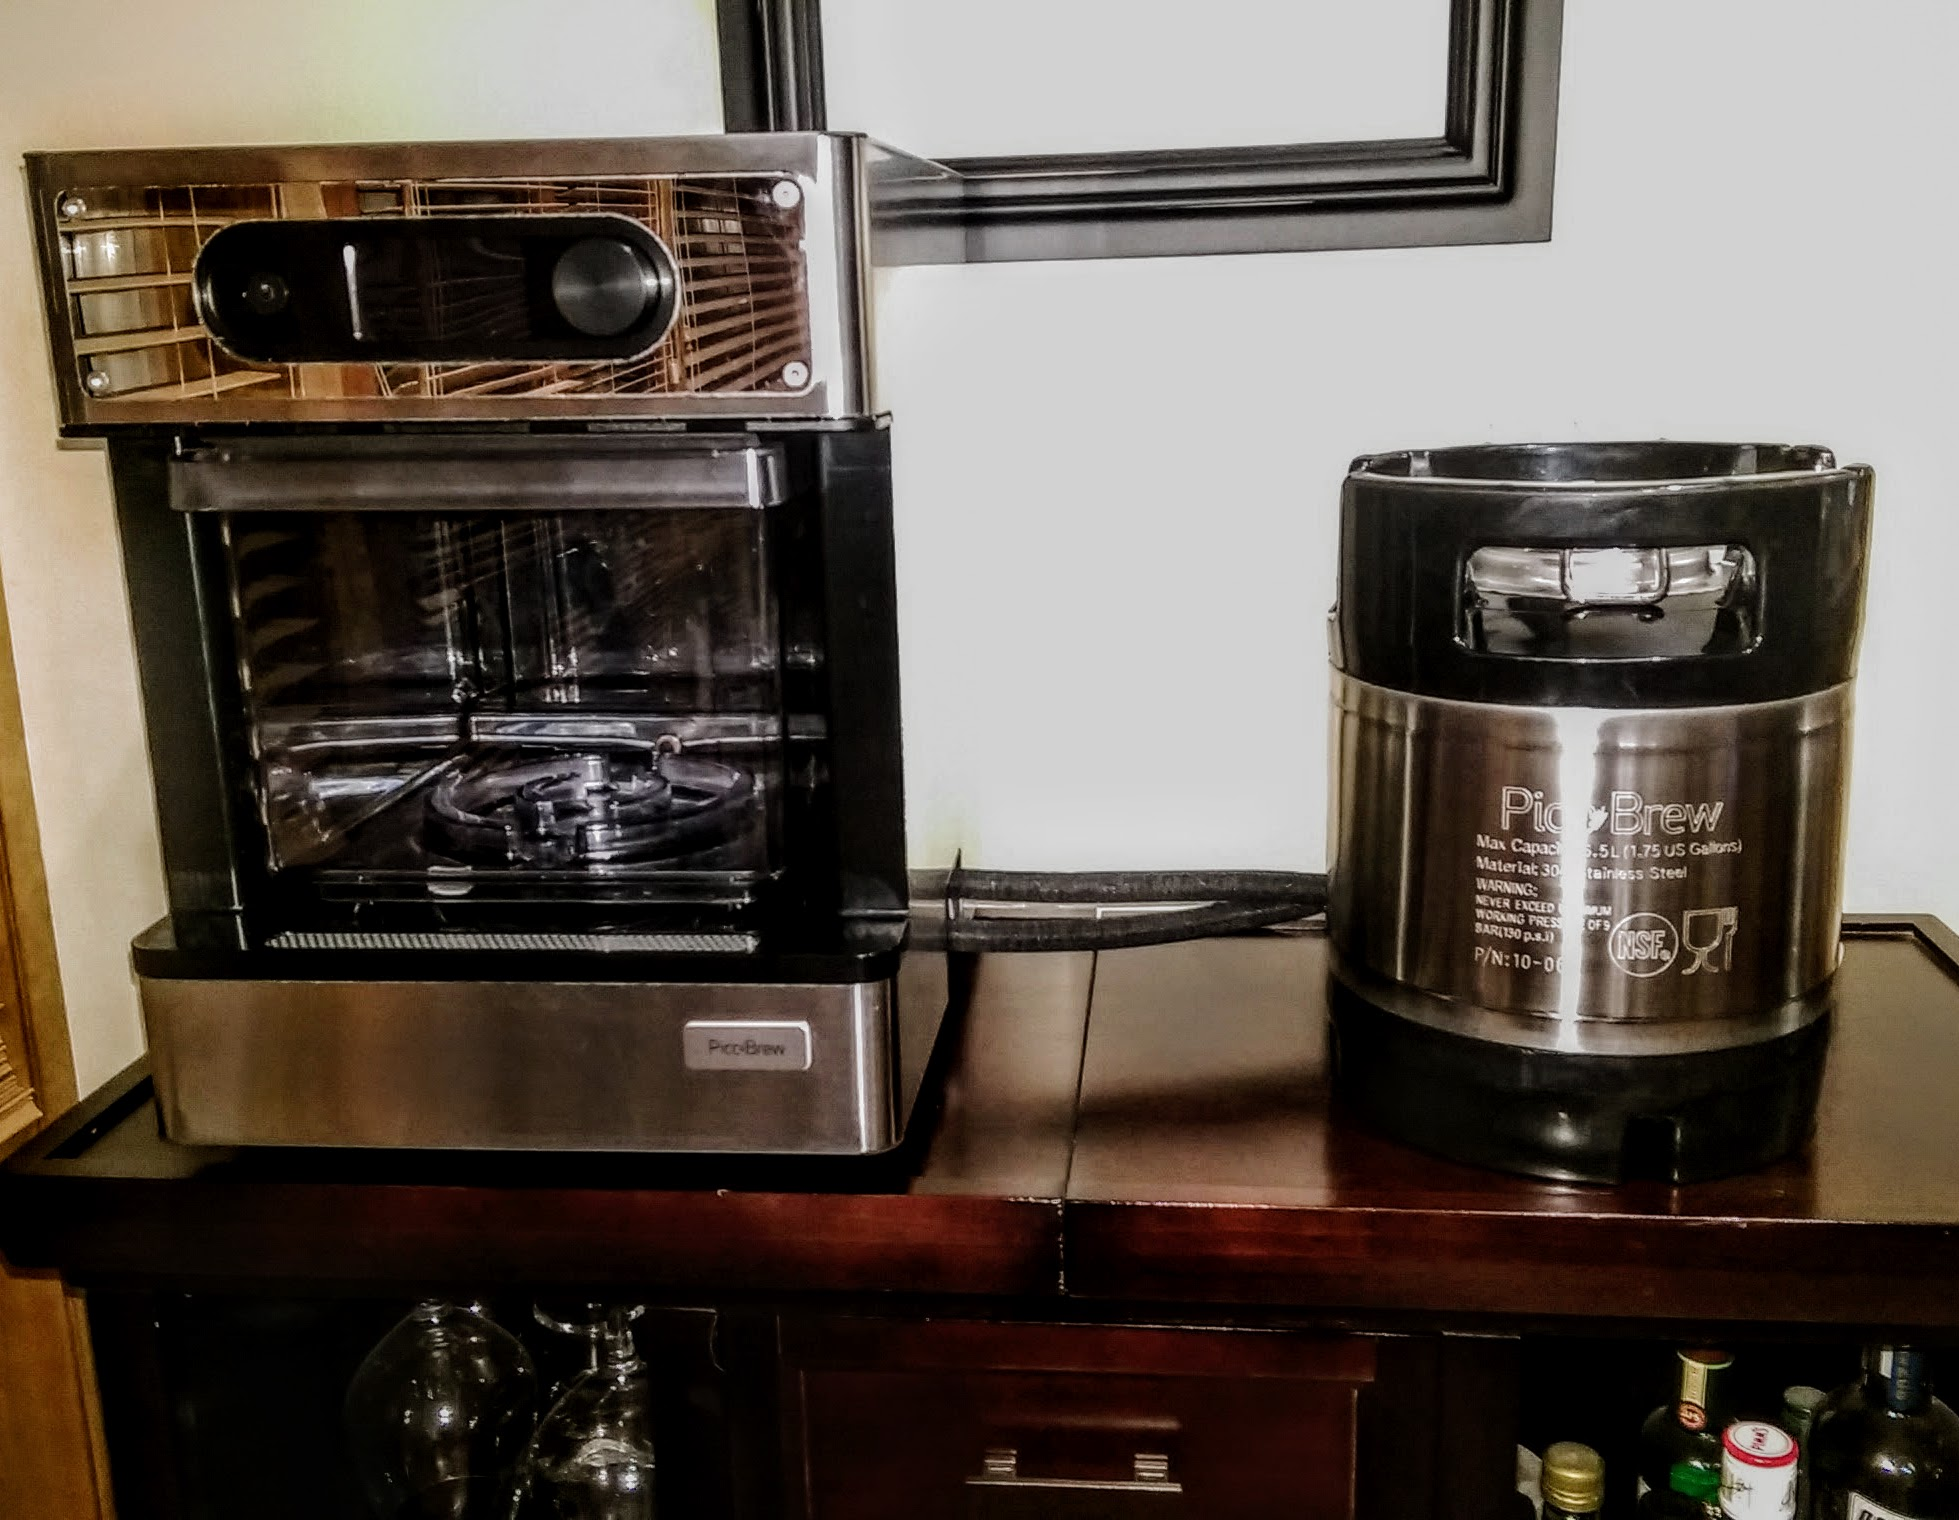 Read to brew: the Pico and the brew keg